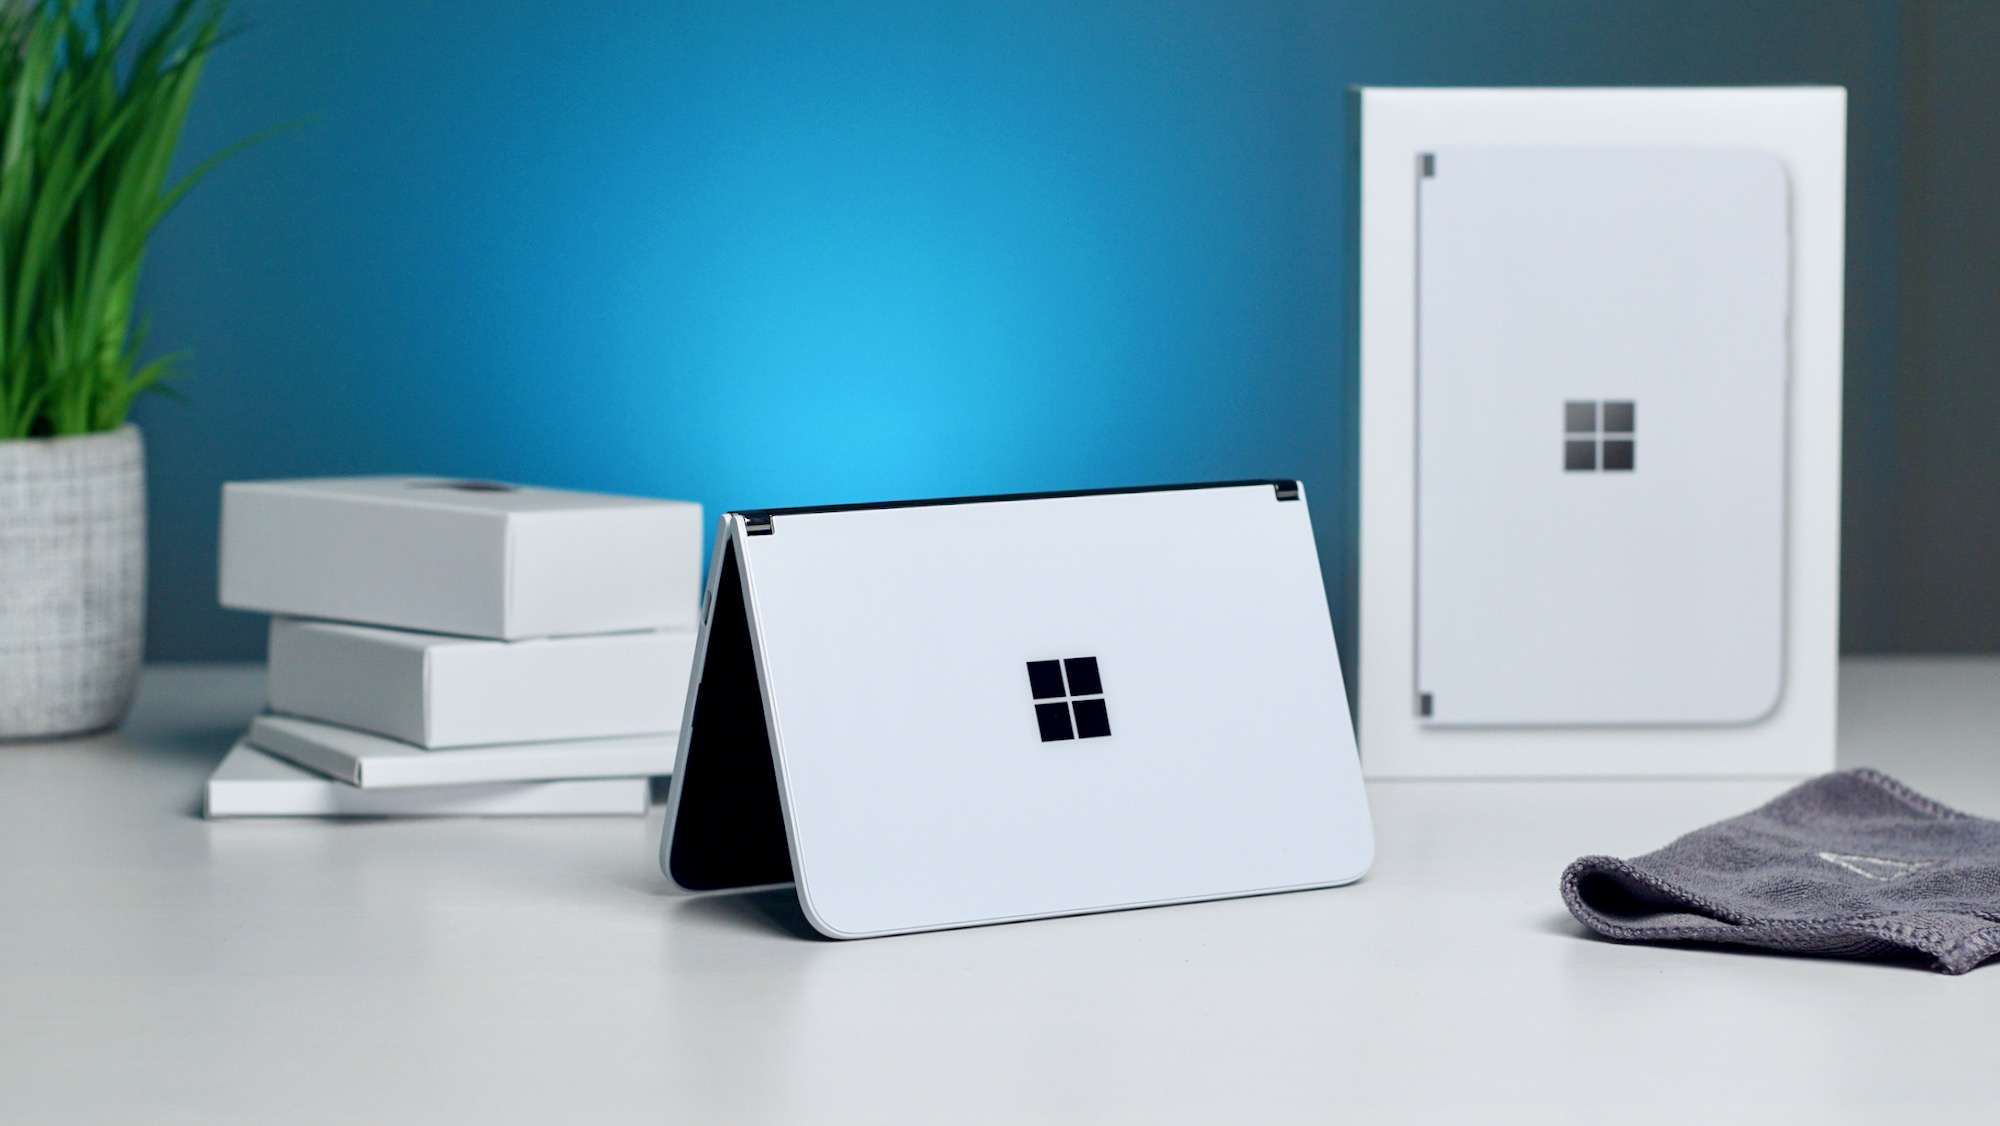 Microsoft Surface Duo unboxing and hands-on [VIDEO]